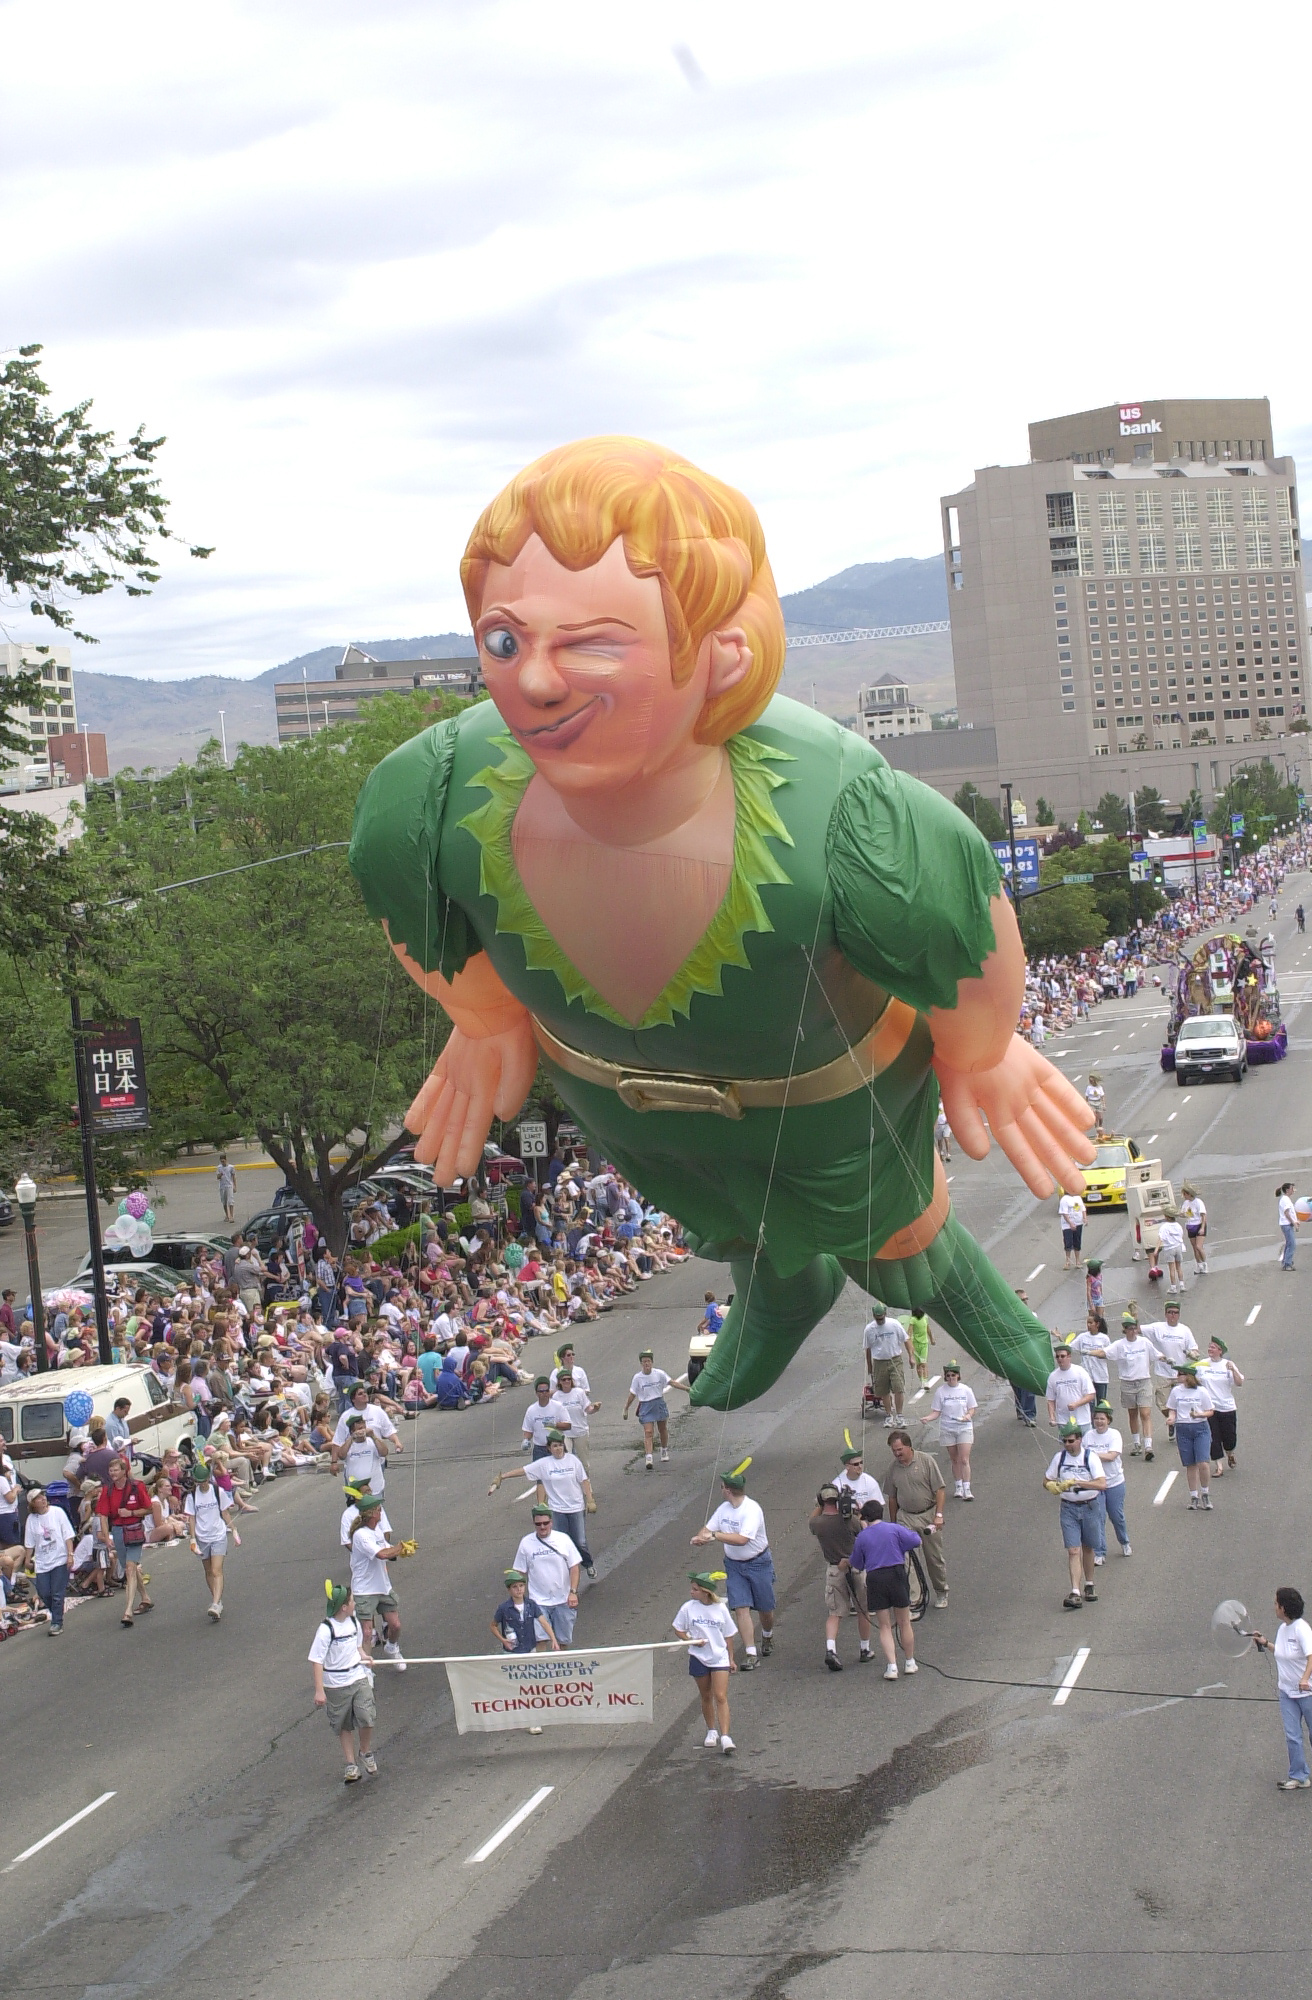 Peter Pan Parade Balloon